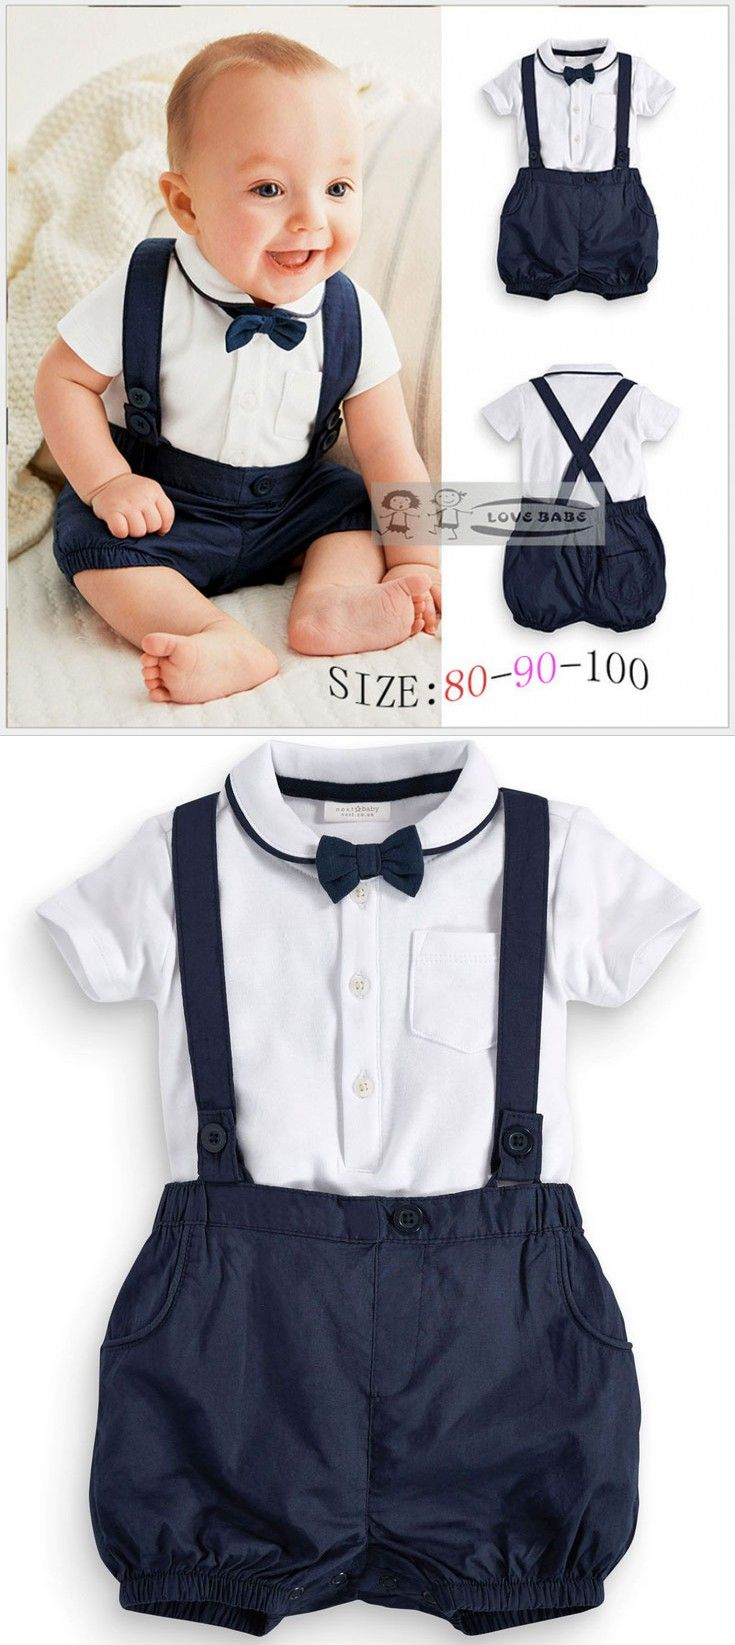 2724c4641 Summer Baby Clothing Cotton 2pcs Suit Short Infant Boy Gentleman ...